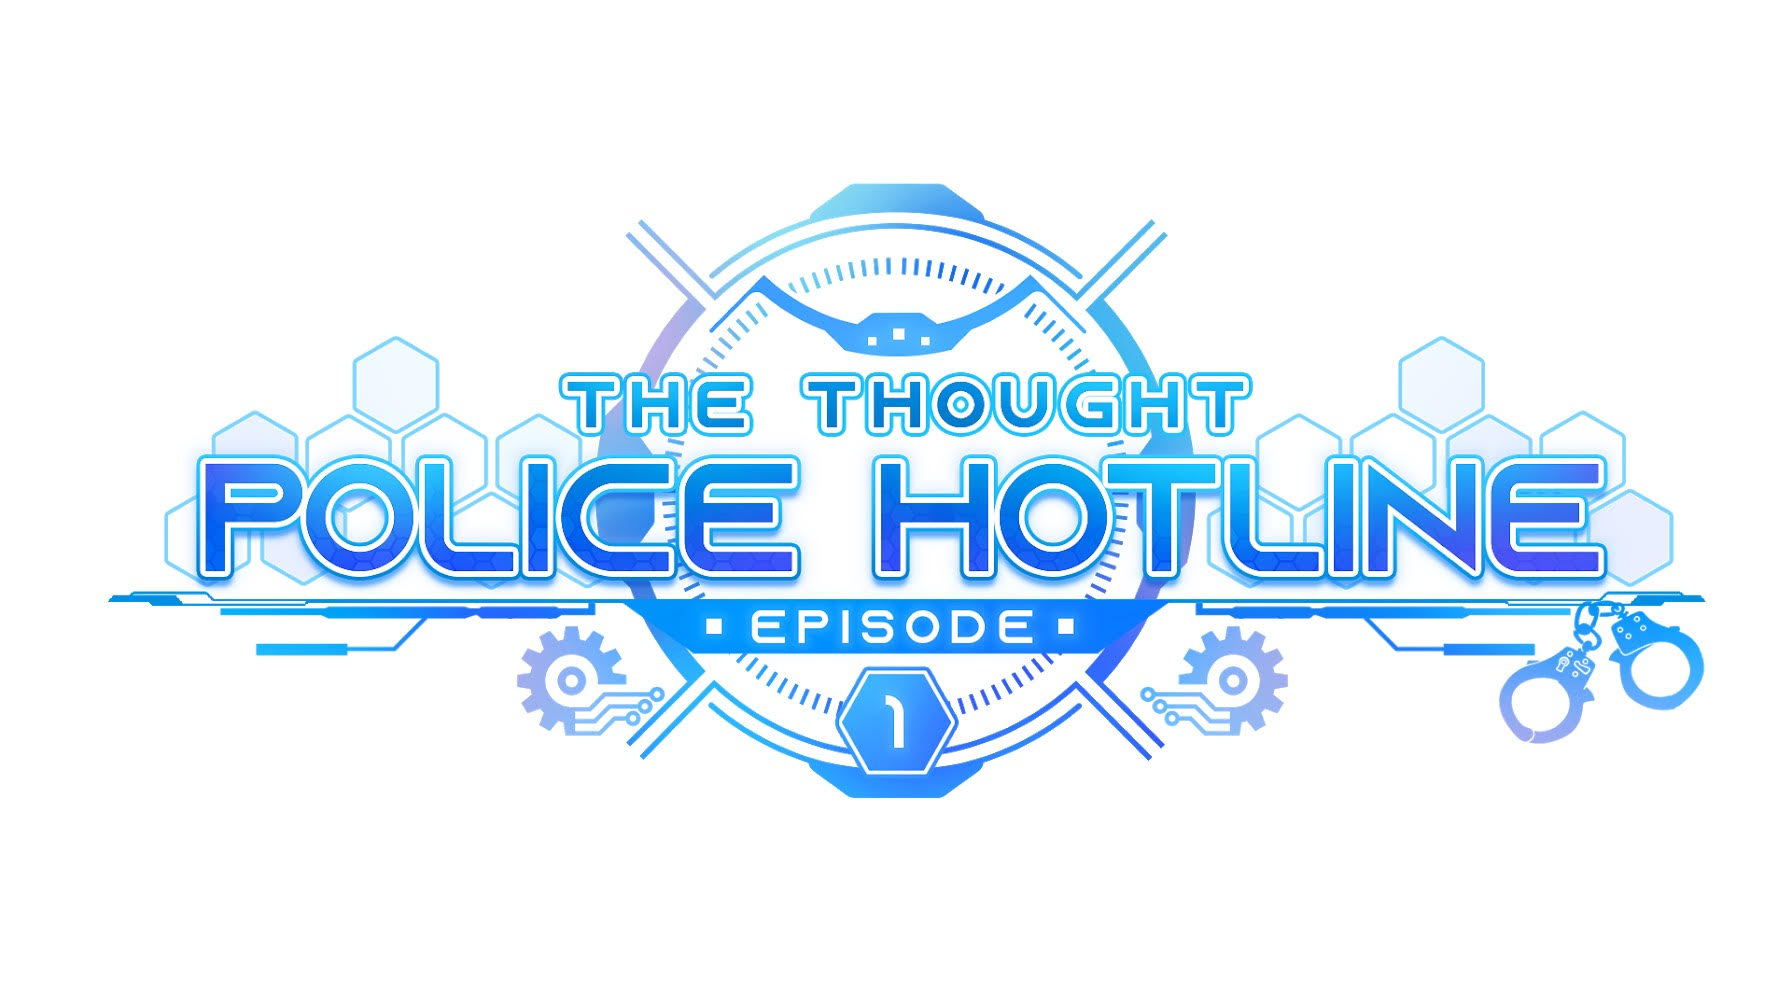 The Thought Police Hotline: Episode 1